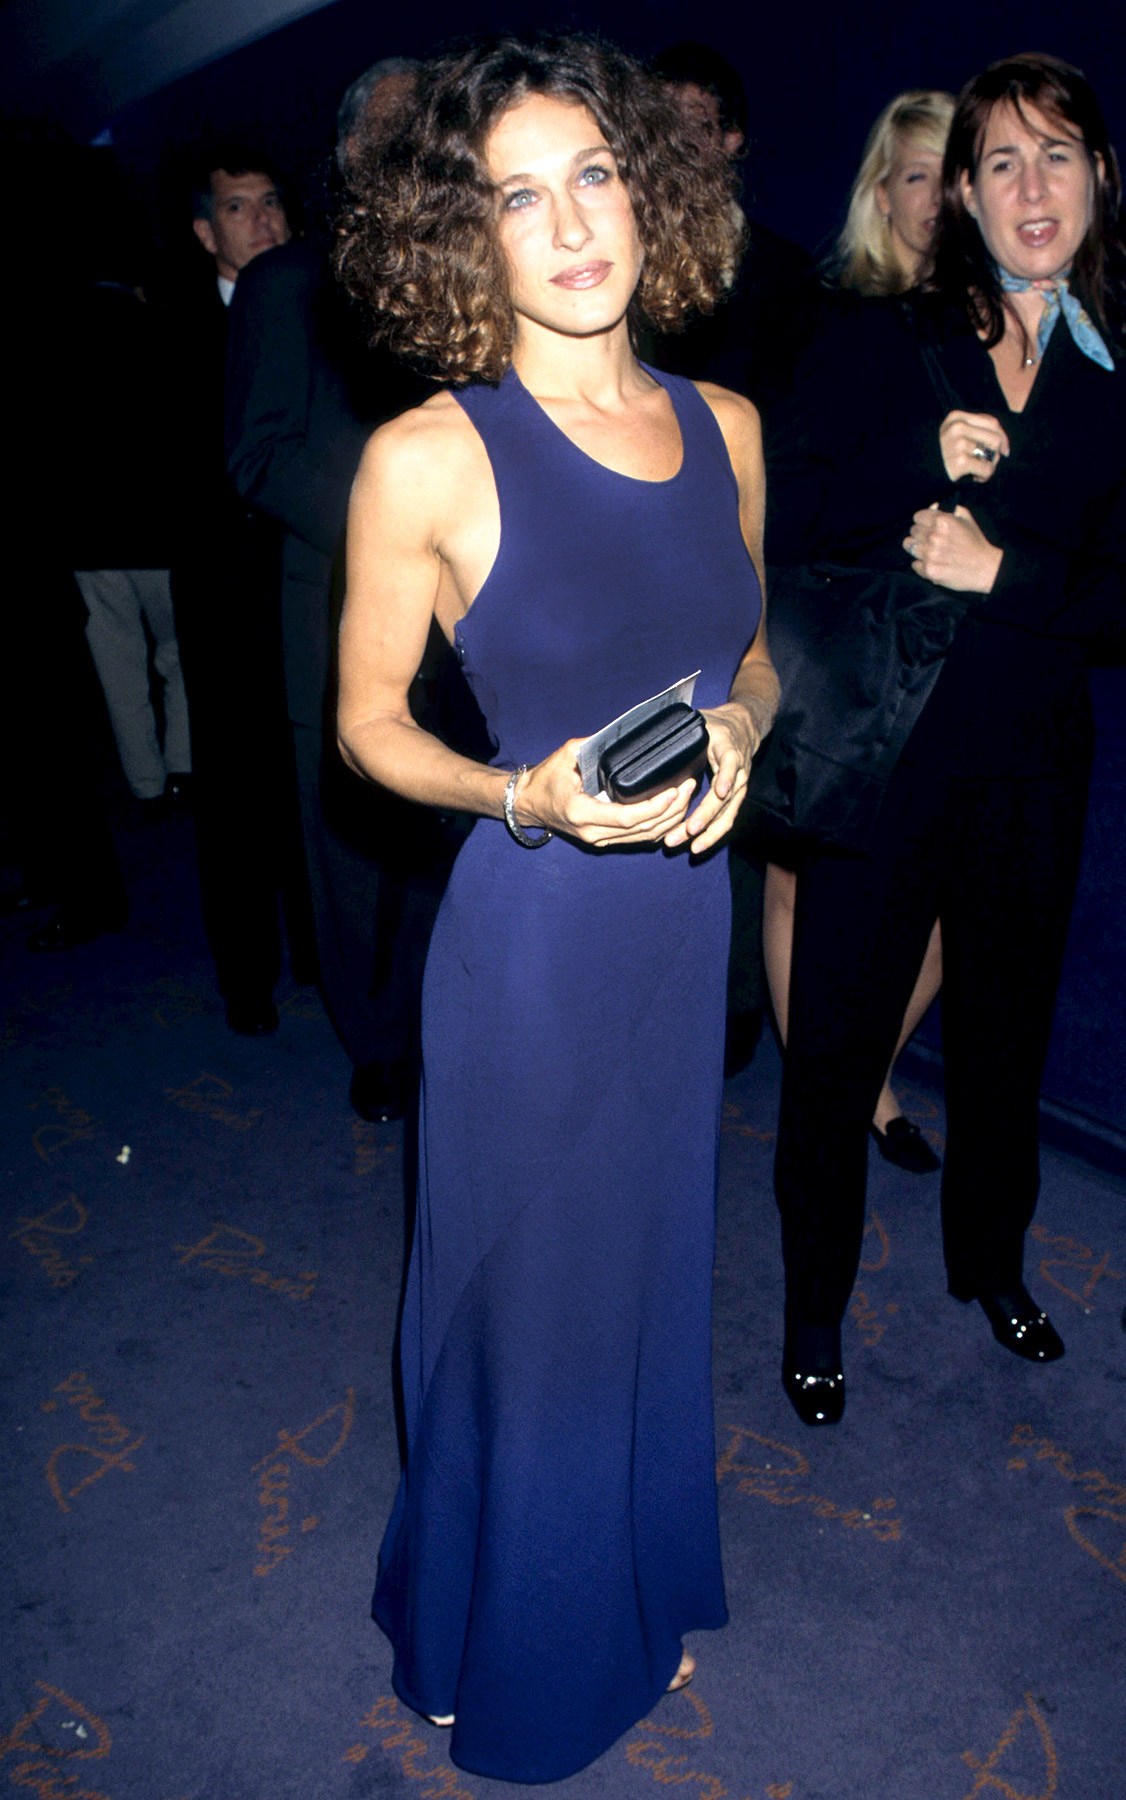 Though she went braless in a blueberry-colored gown to the The First Wives Club premiere on Sept. 18, 1996, it was Parker's deep brown locks that turned heads. After years as a curly blonde, the future HBO superstar proved she could also be a brunette.